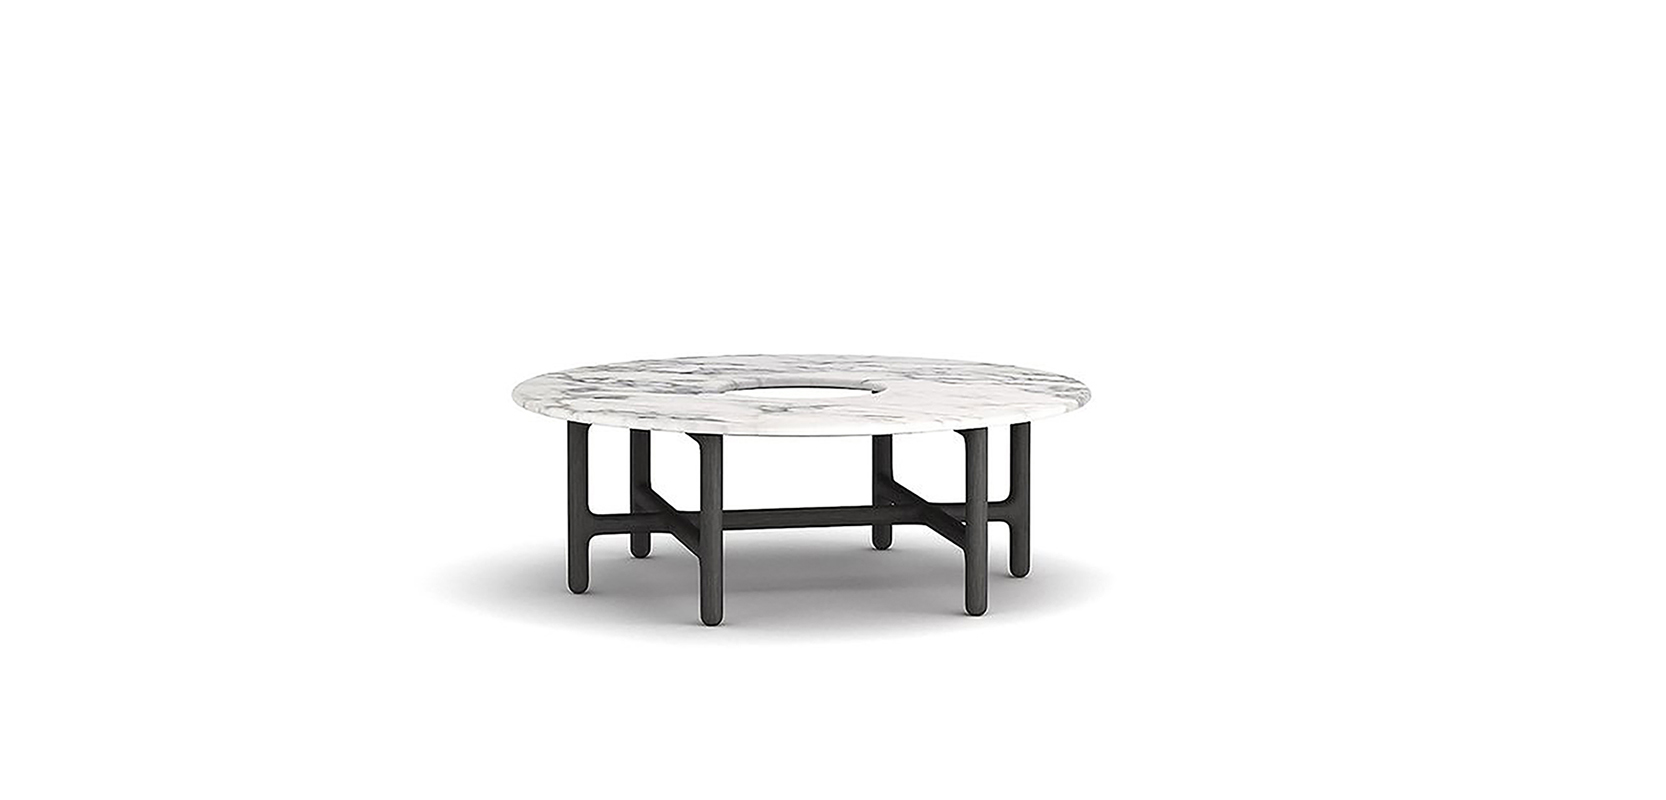 SUSON COFFEE TABLE BRAND:  ROLING LIANG CHEN  WEB:   www.roling.cn  It shows the oriental aesthetic concept with the shape of round desktop and square legs. A forest of crisscross legs under the table support the marble desktop just creates a sense of natural philosophy.